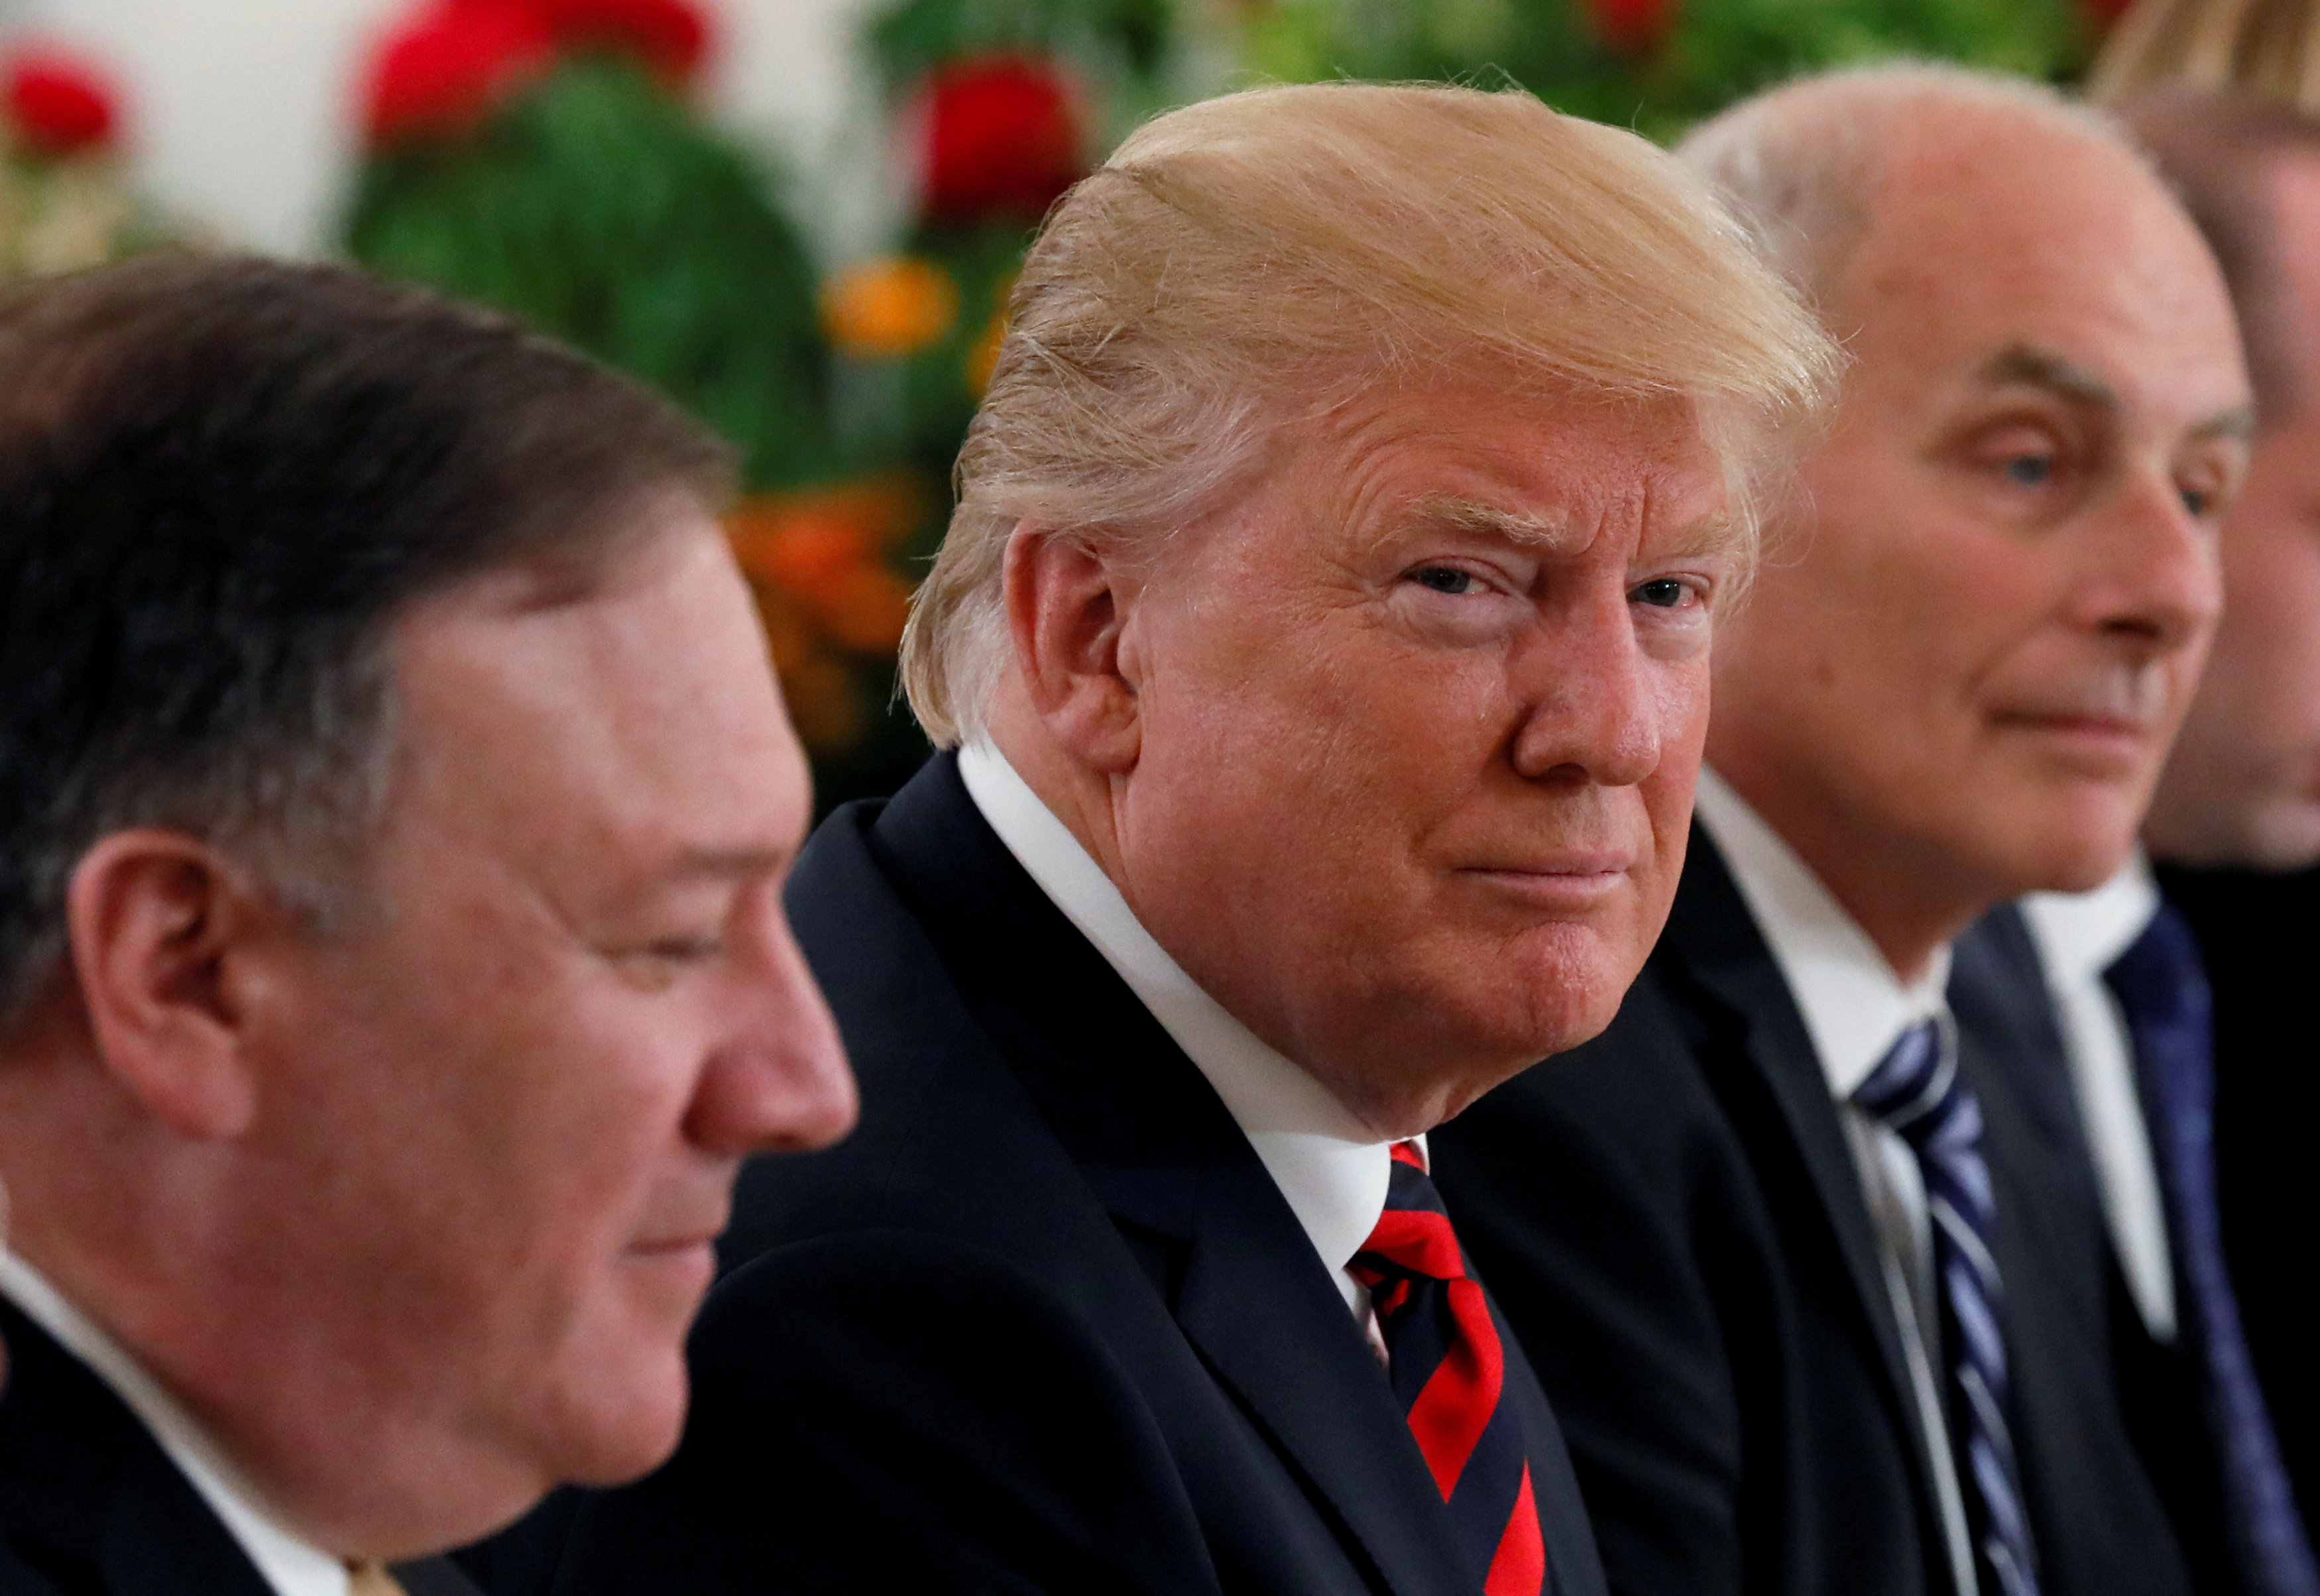 U.S. President Donald Trump flanked by Secretary of State Mike Pompeo and White House Chief of Staff John Kelly attend a lunch with Singapore's Prime Minister Lee Hsien Loong and officials at the Istana in Singapore June 11, 2018. REUTERS/Jonathan Ernst